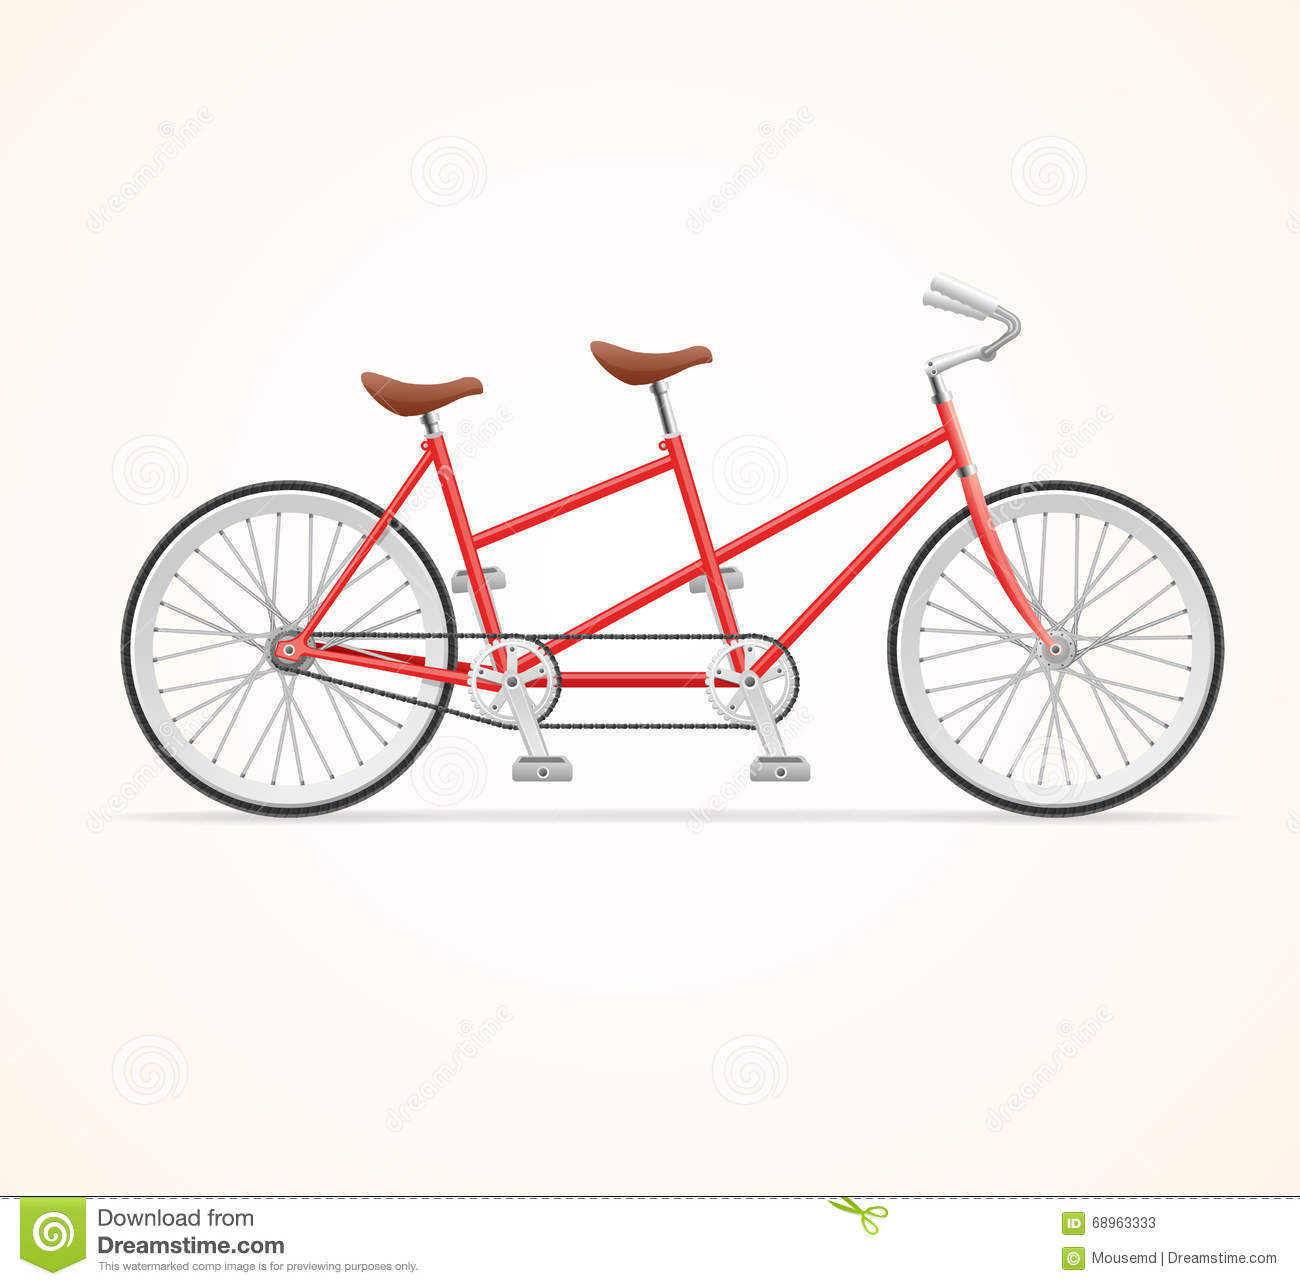 Vintage Tandem Bicycle. Vector Stock Vector - Image: 68963333